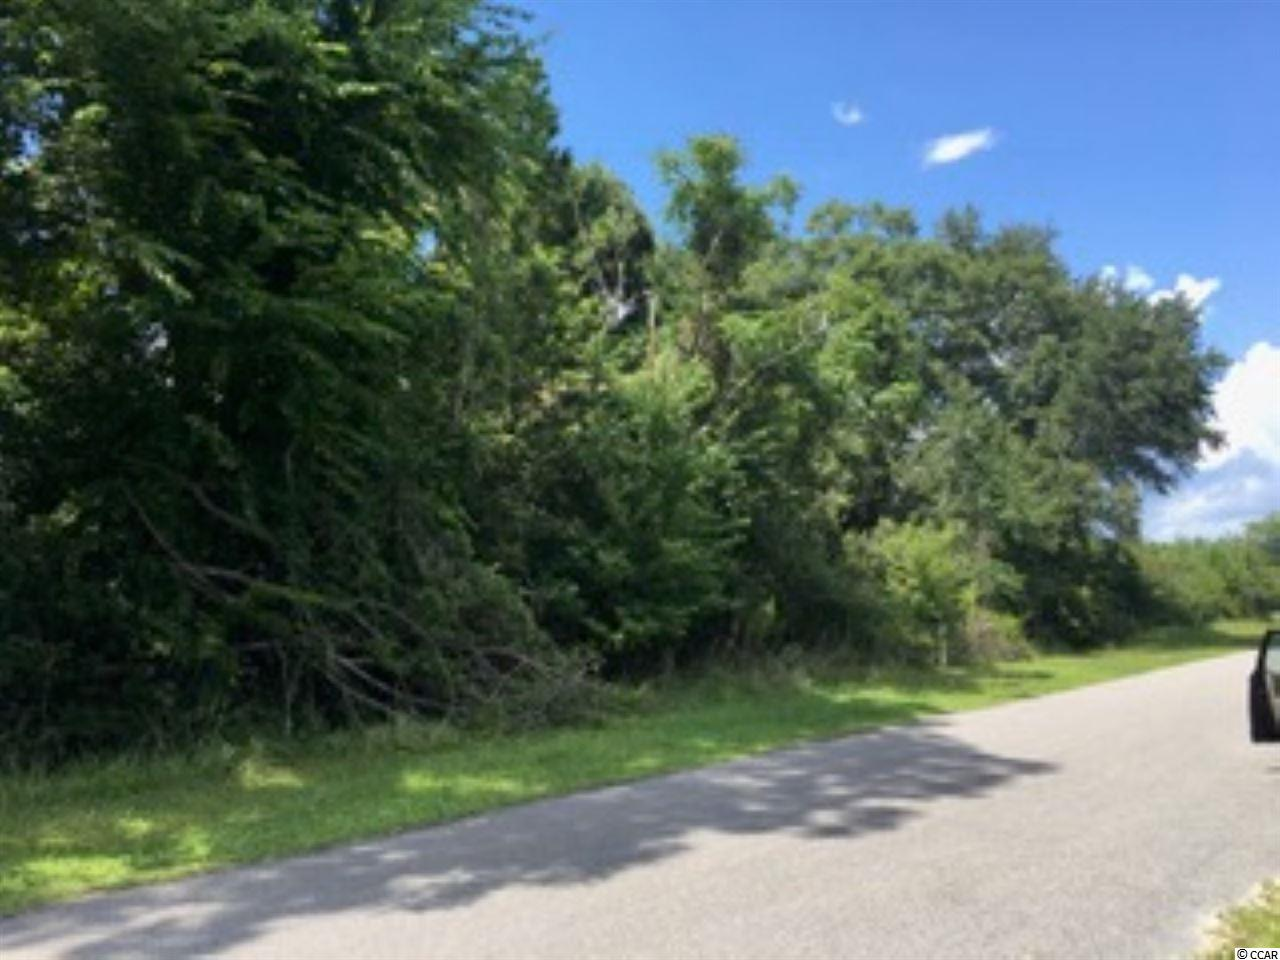 .71 acre vacant lot. Great deal on a lot to build your dream home. No time frame to build. Schedule your showing today.